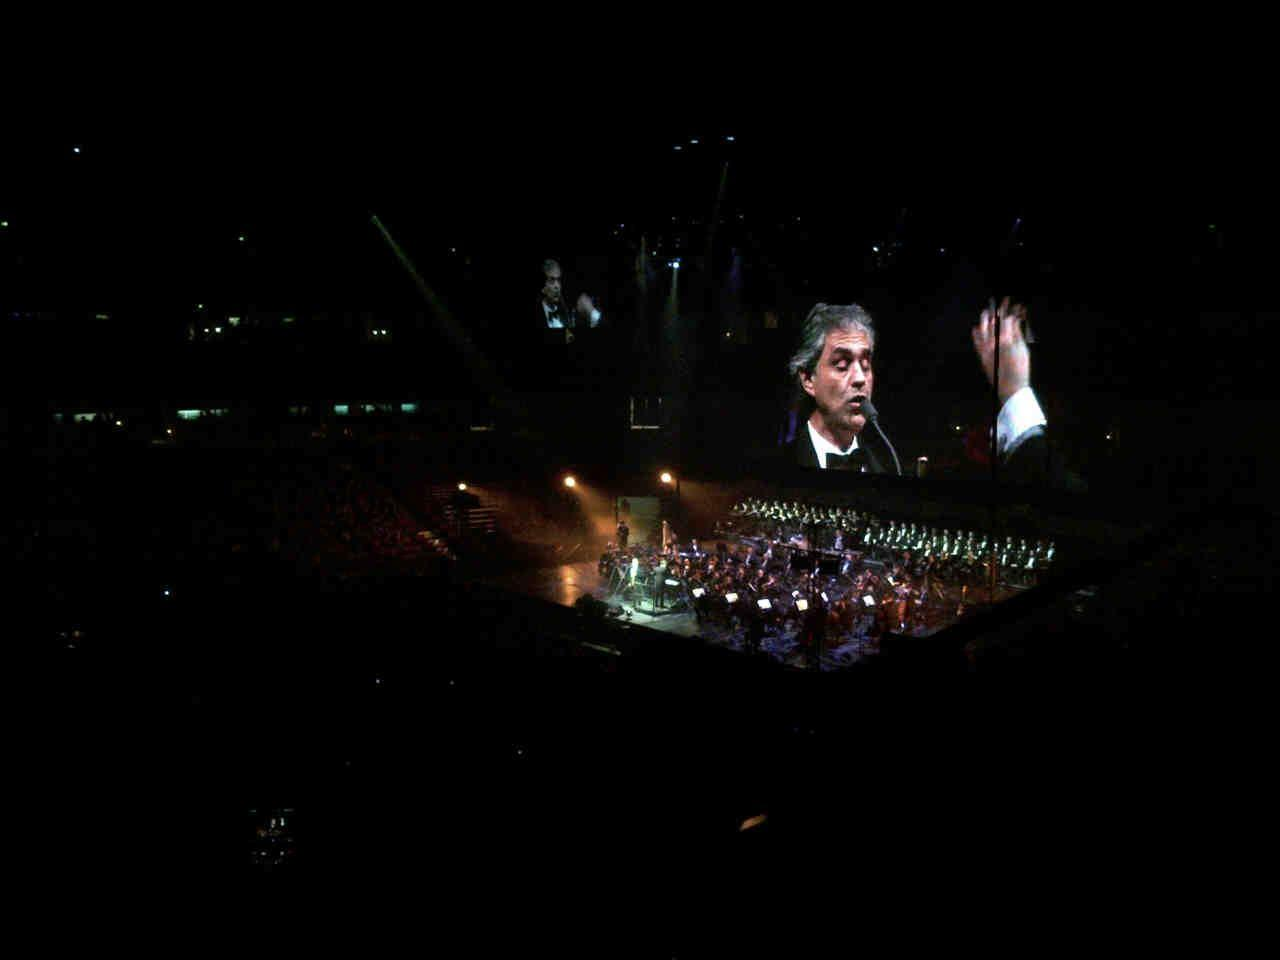 Andrea Bocelli image Andrea Bocelli in Concert HD wallpapers and